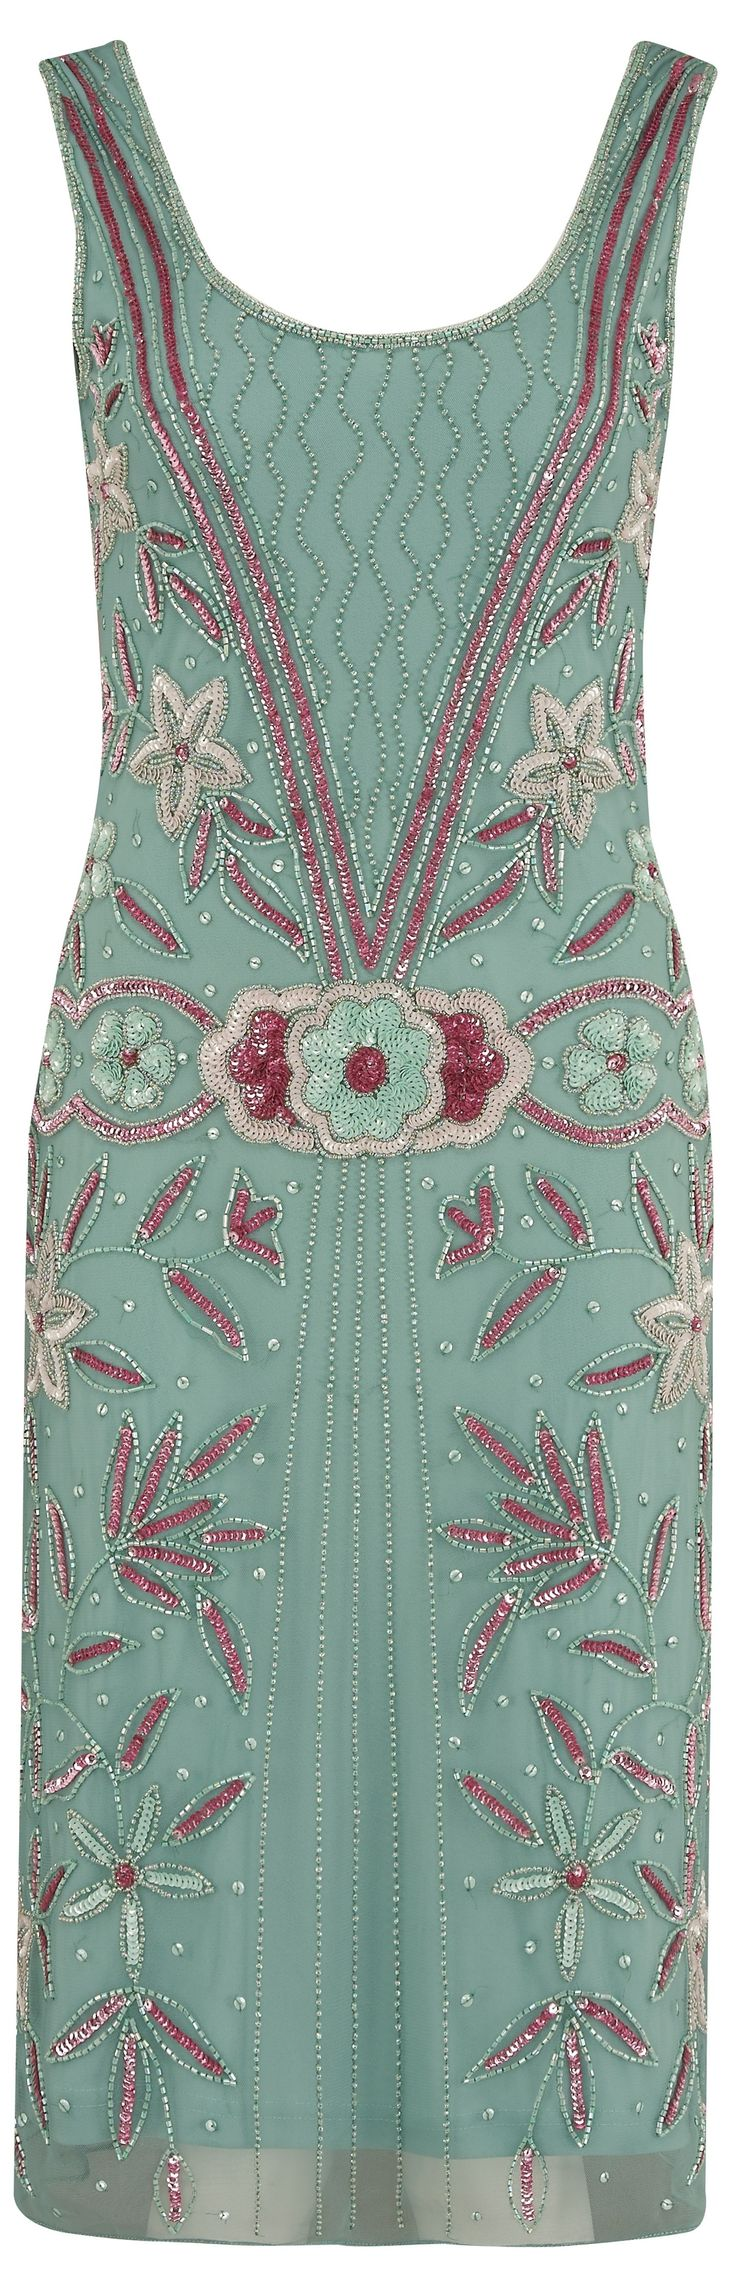 I'm absolutely intoxicated by the color combinations and the designs on this dress. I wonder if they still have it my size. I wonder if it would look good on me. I DO LOVE it. Anyway... if you're tired of clicking pins, click to read my updated article: http://www.boomerinas.com/2013/06/26/flapper-fashion-trend-for-parties-cruises-weddings/